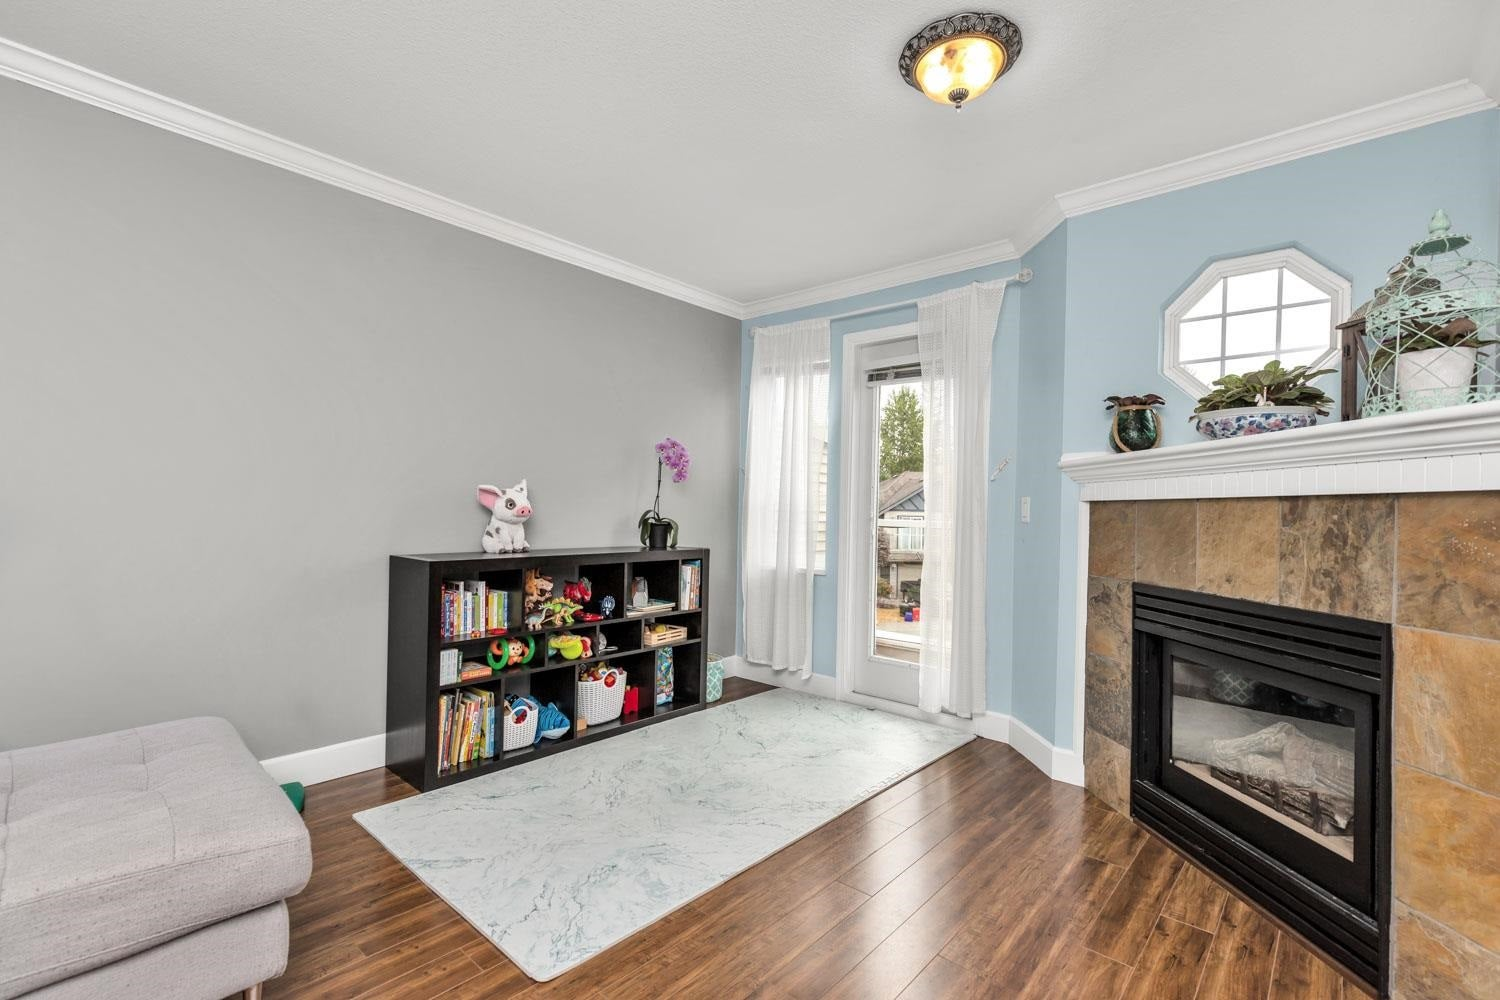 35 11229 232 STREET - East Central Townhouse for sale, 3 Bedrooms (R2604128) - #8